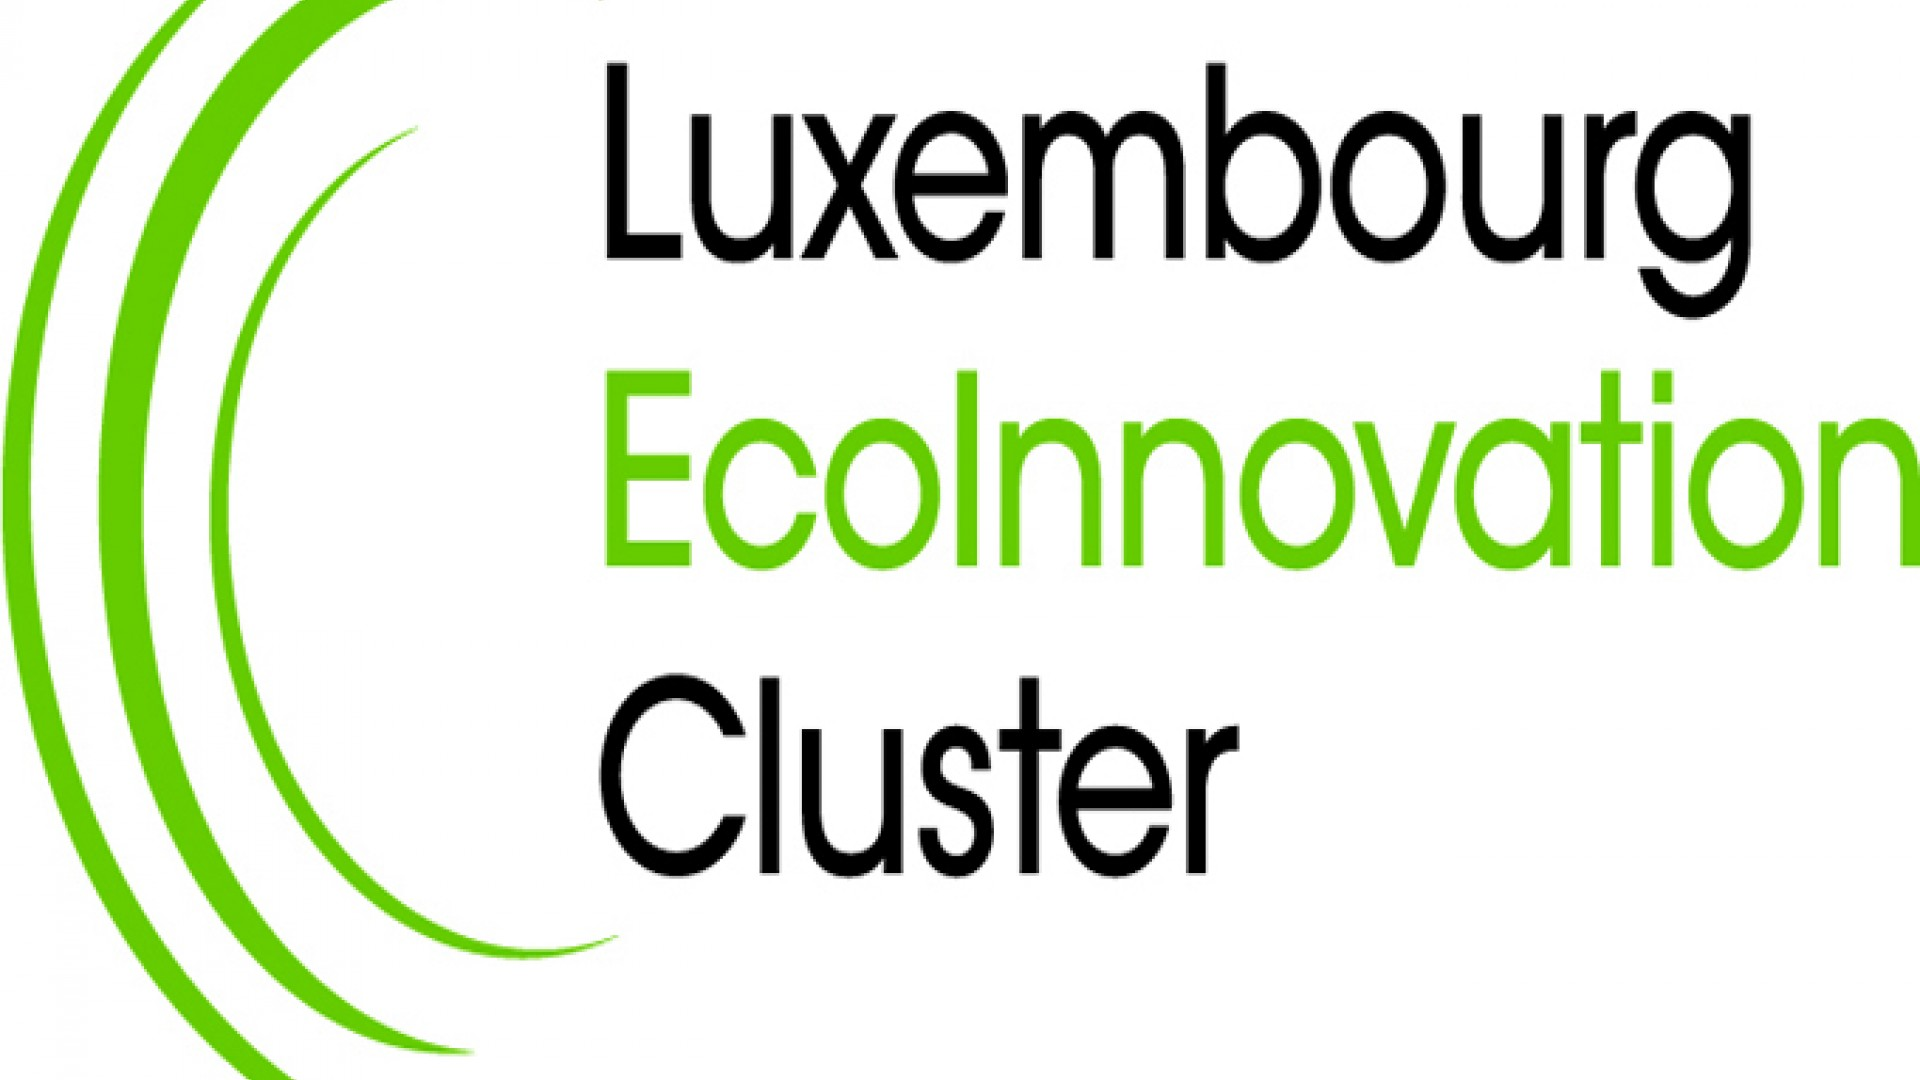 cluster ecoinnovation